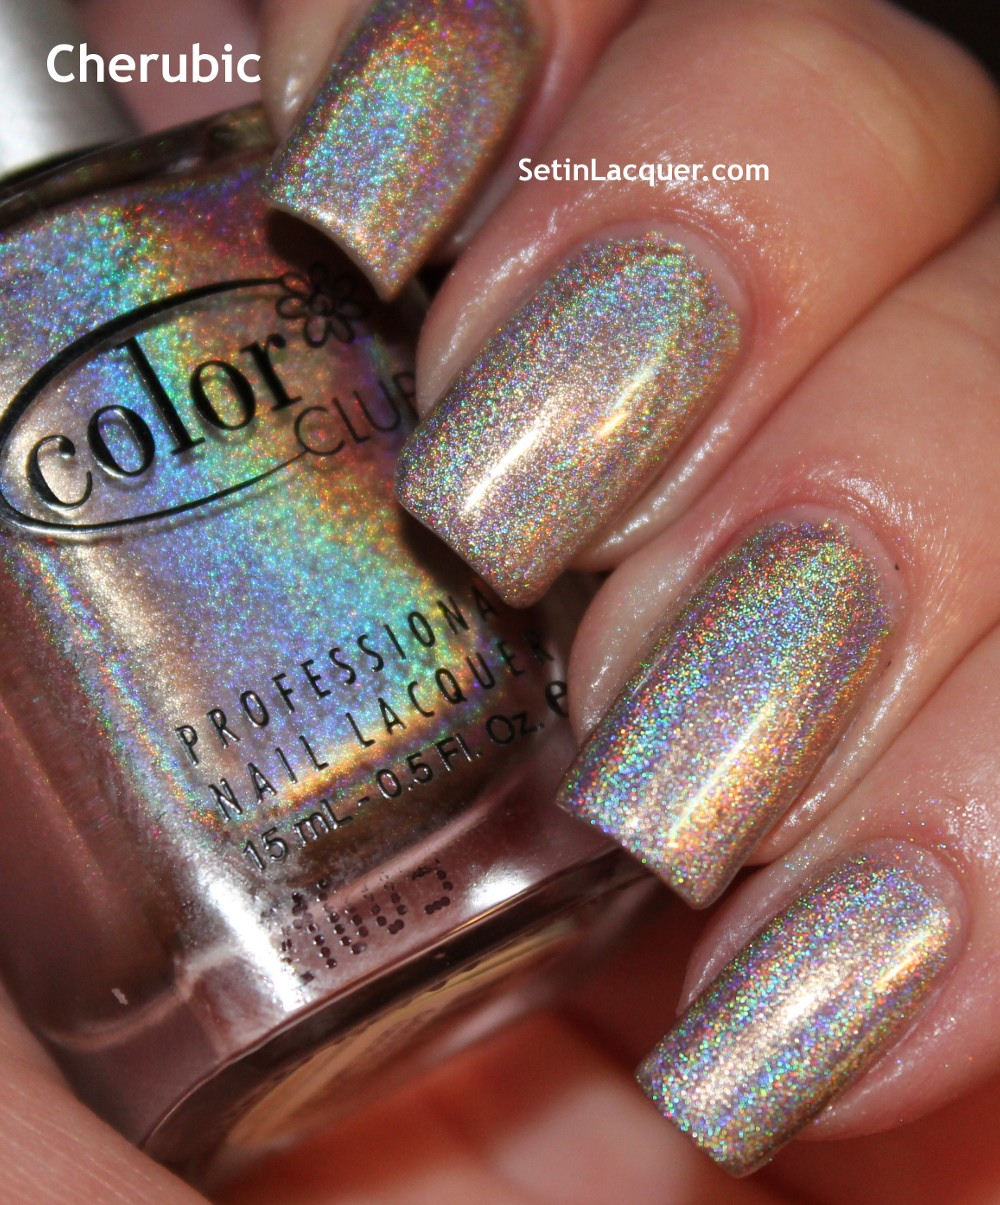 Color Club Holographic Nail Polish Swatches: 2012 Color Club ♥ Halo Hues Holographic Nail Polish